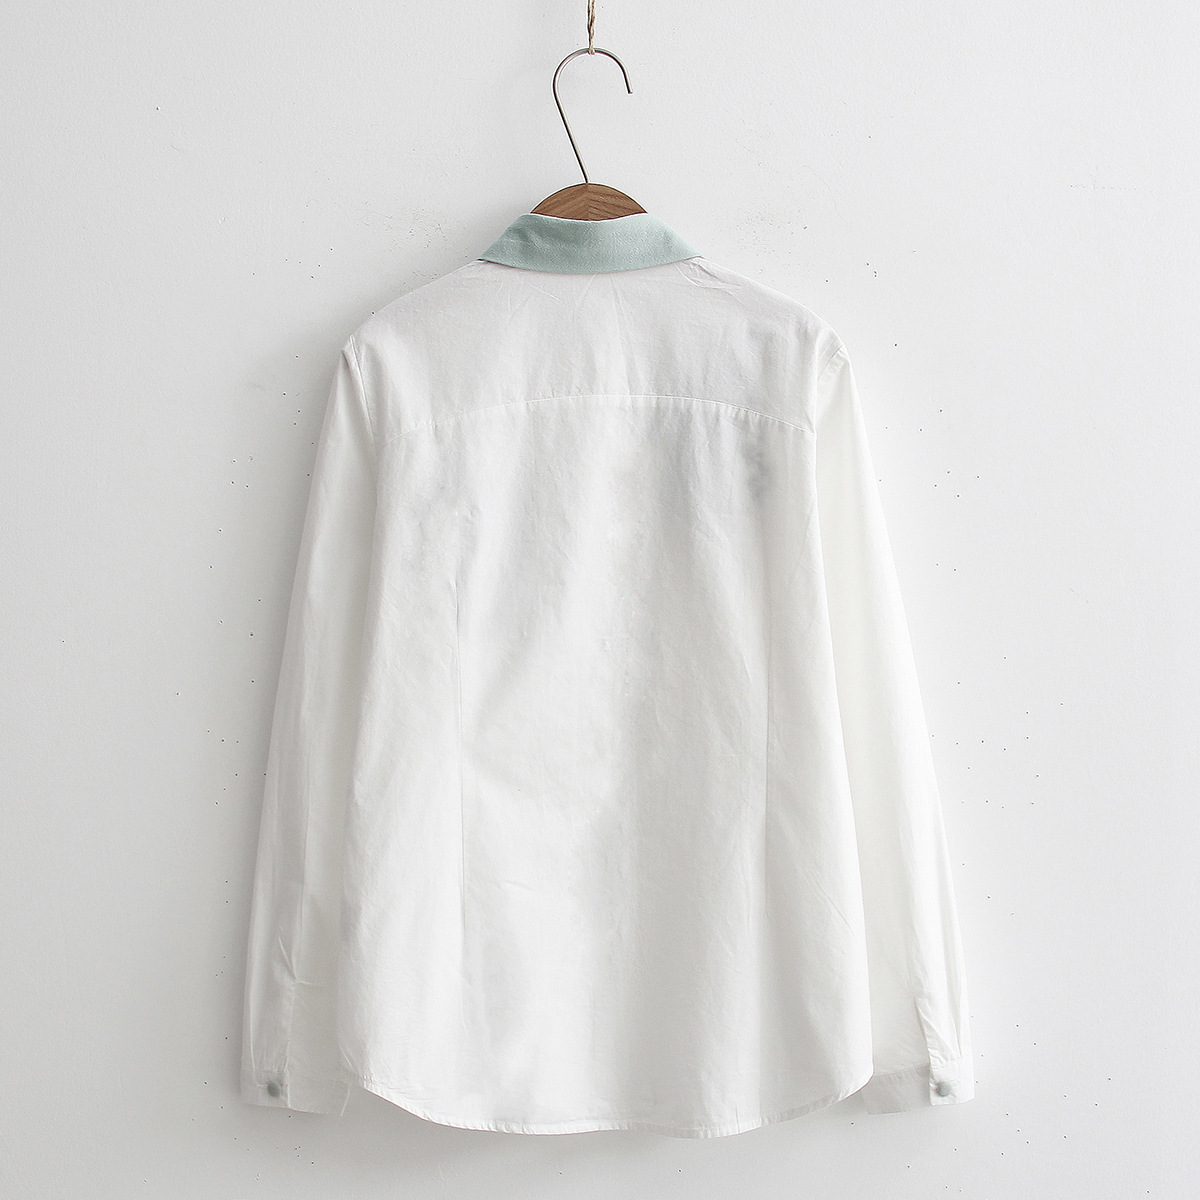 Floral Embroidery White Blouse 10